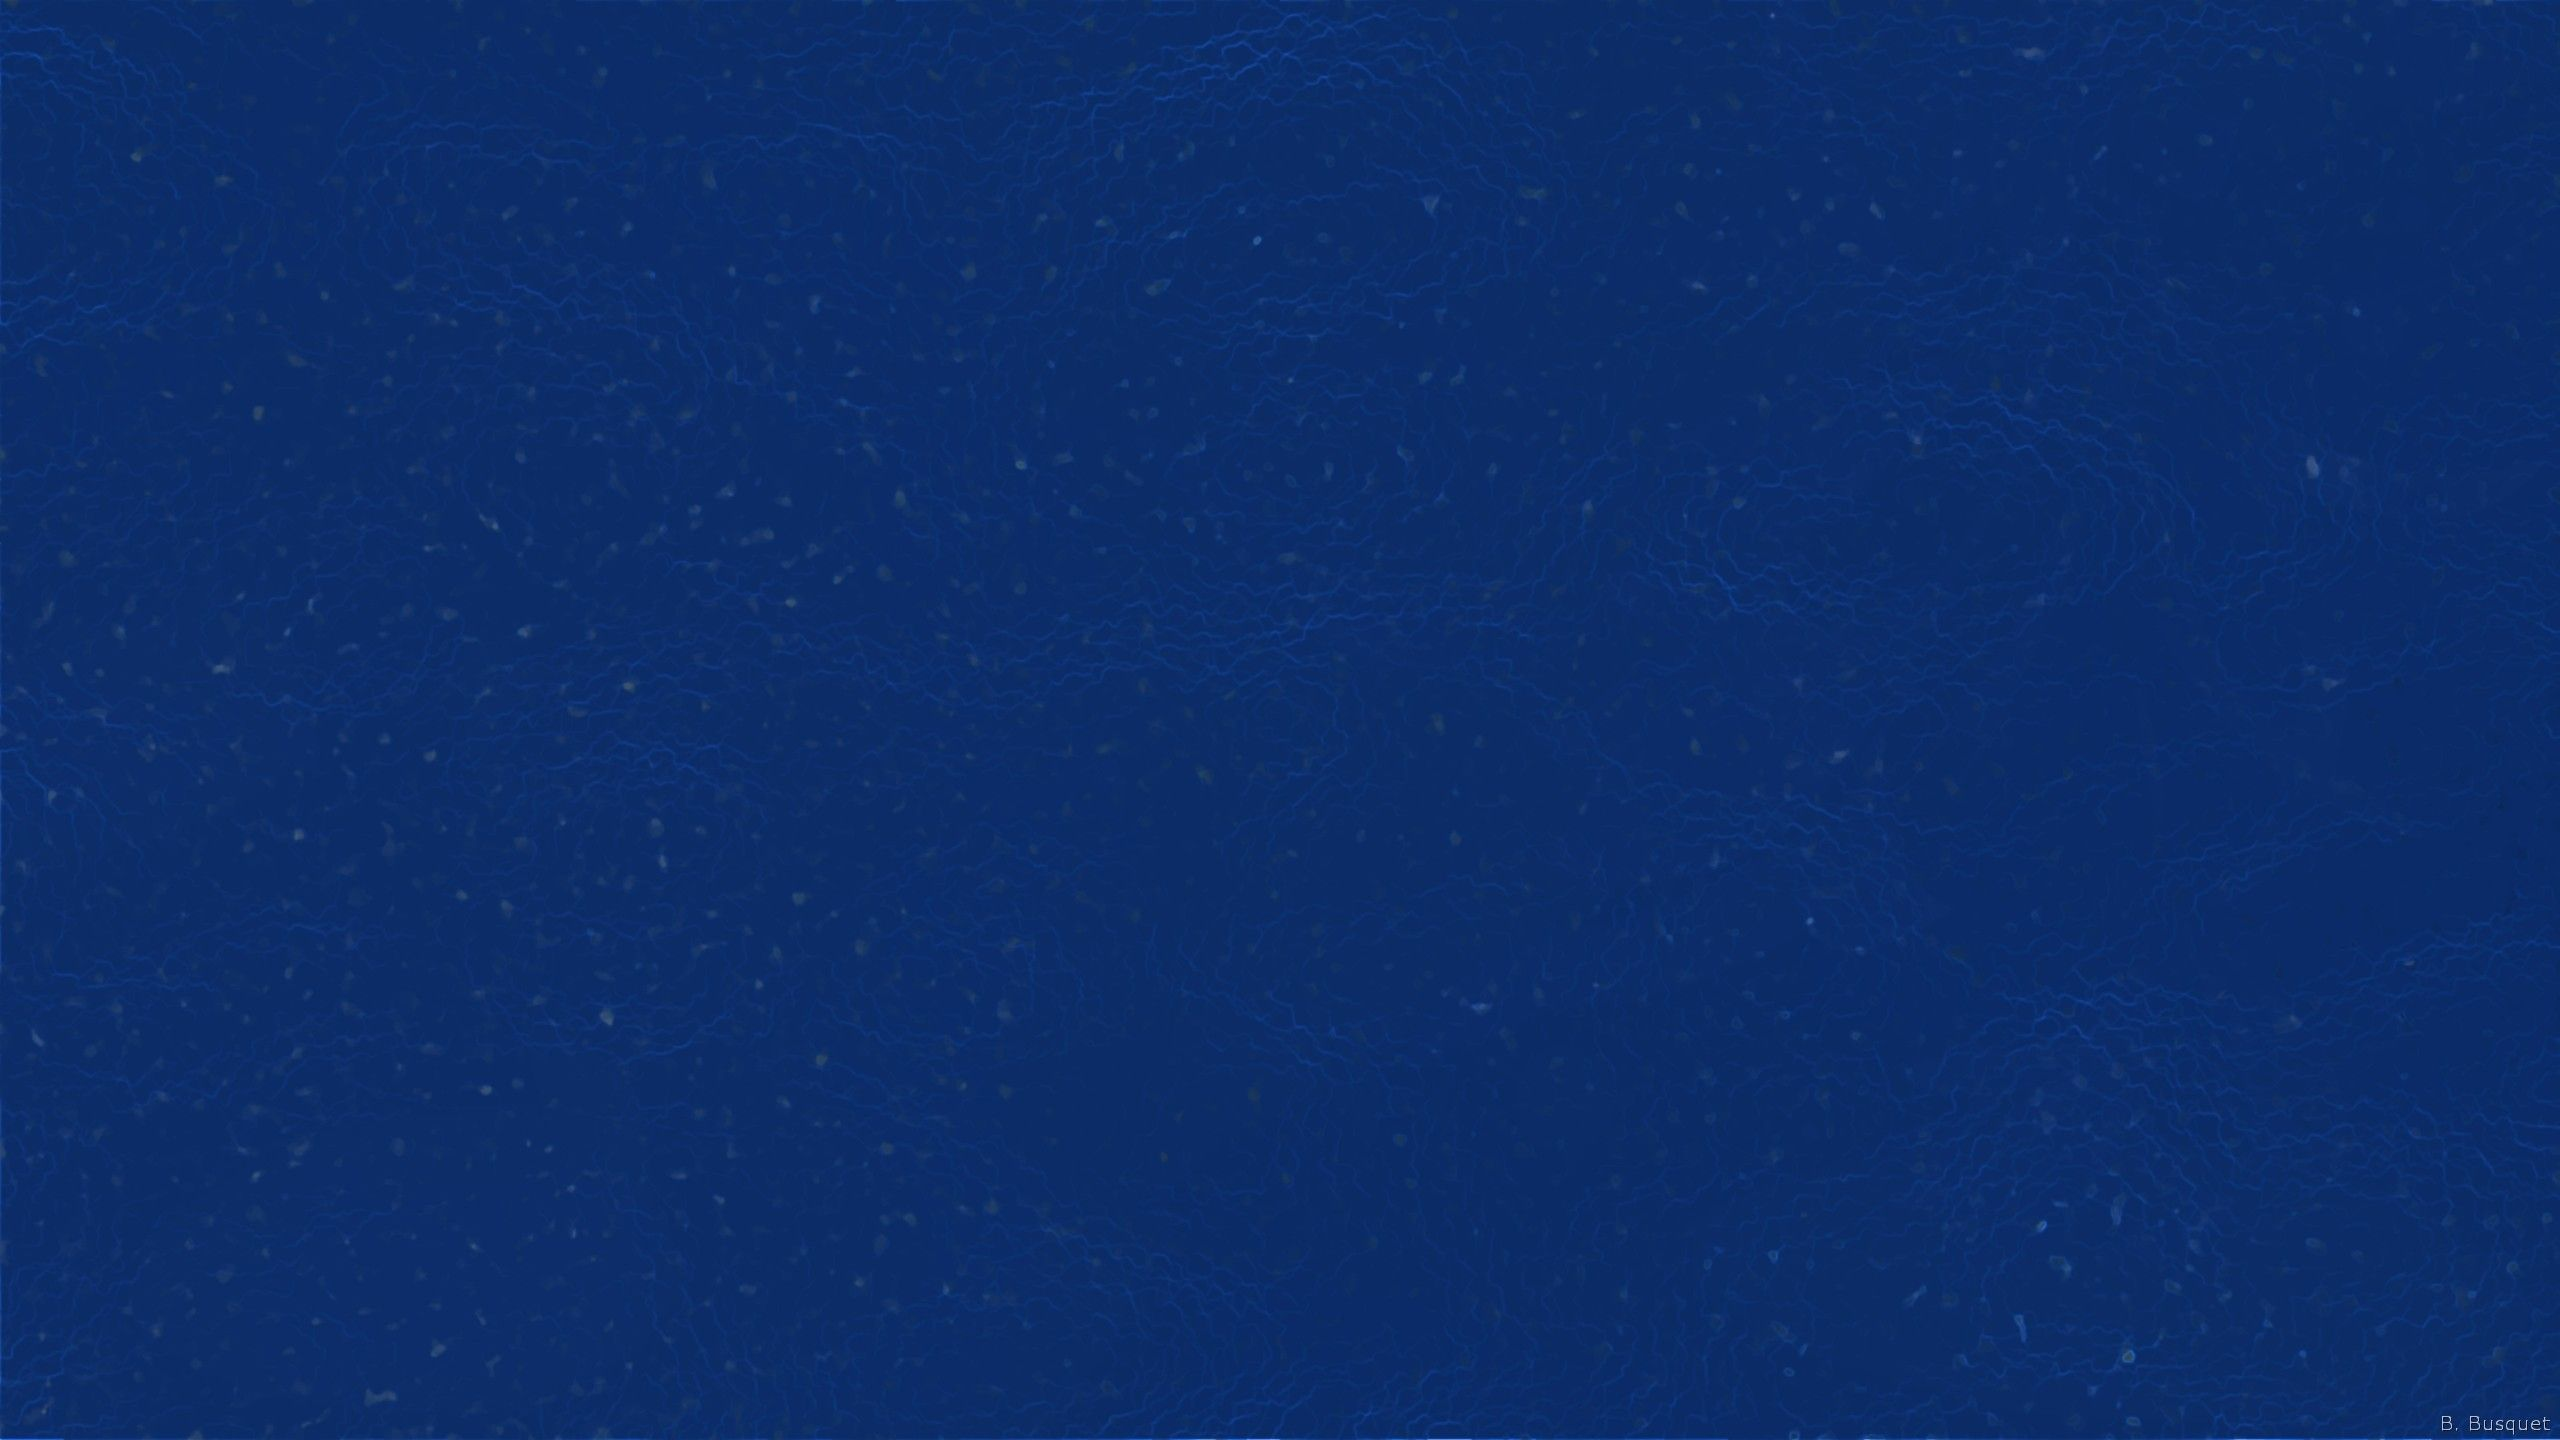 2560x1440 57+ Royal Blue Wallpapers